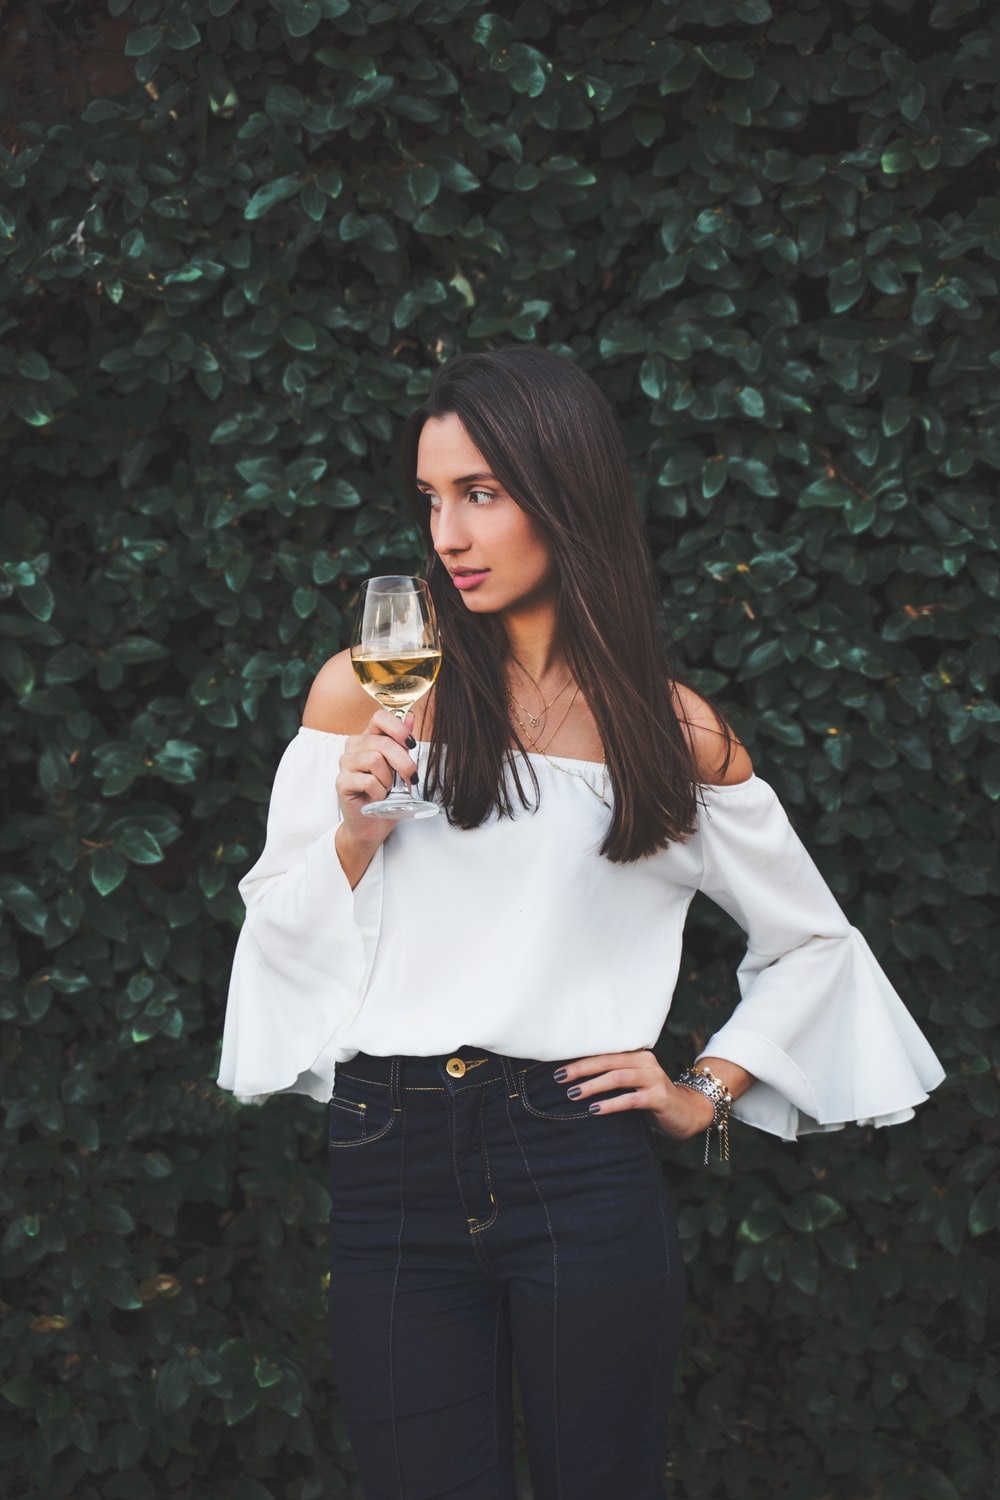 woman in white long sleeve shirt holding clear drinking glass